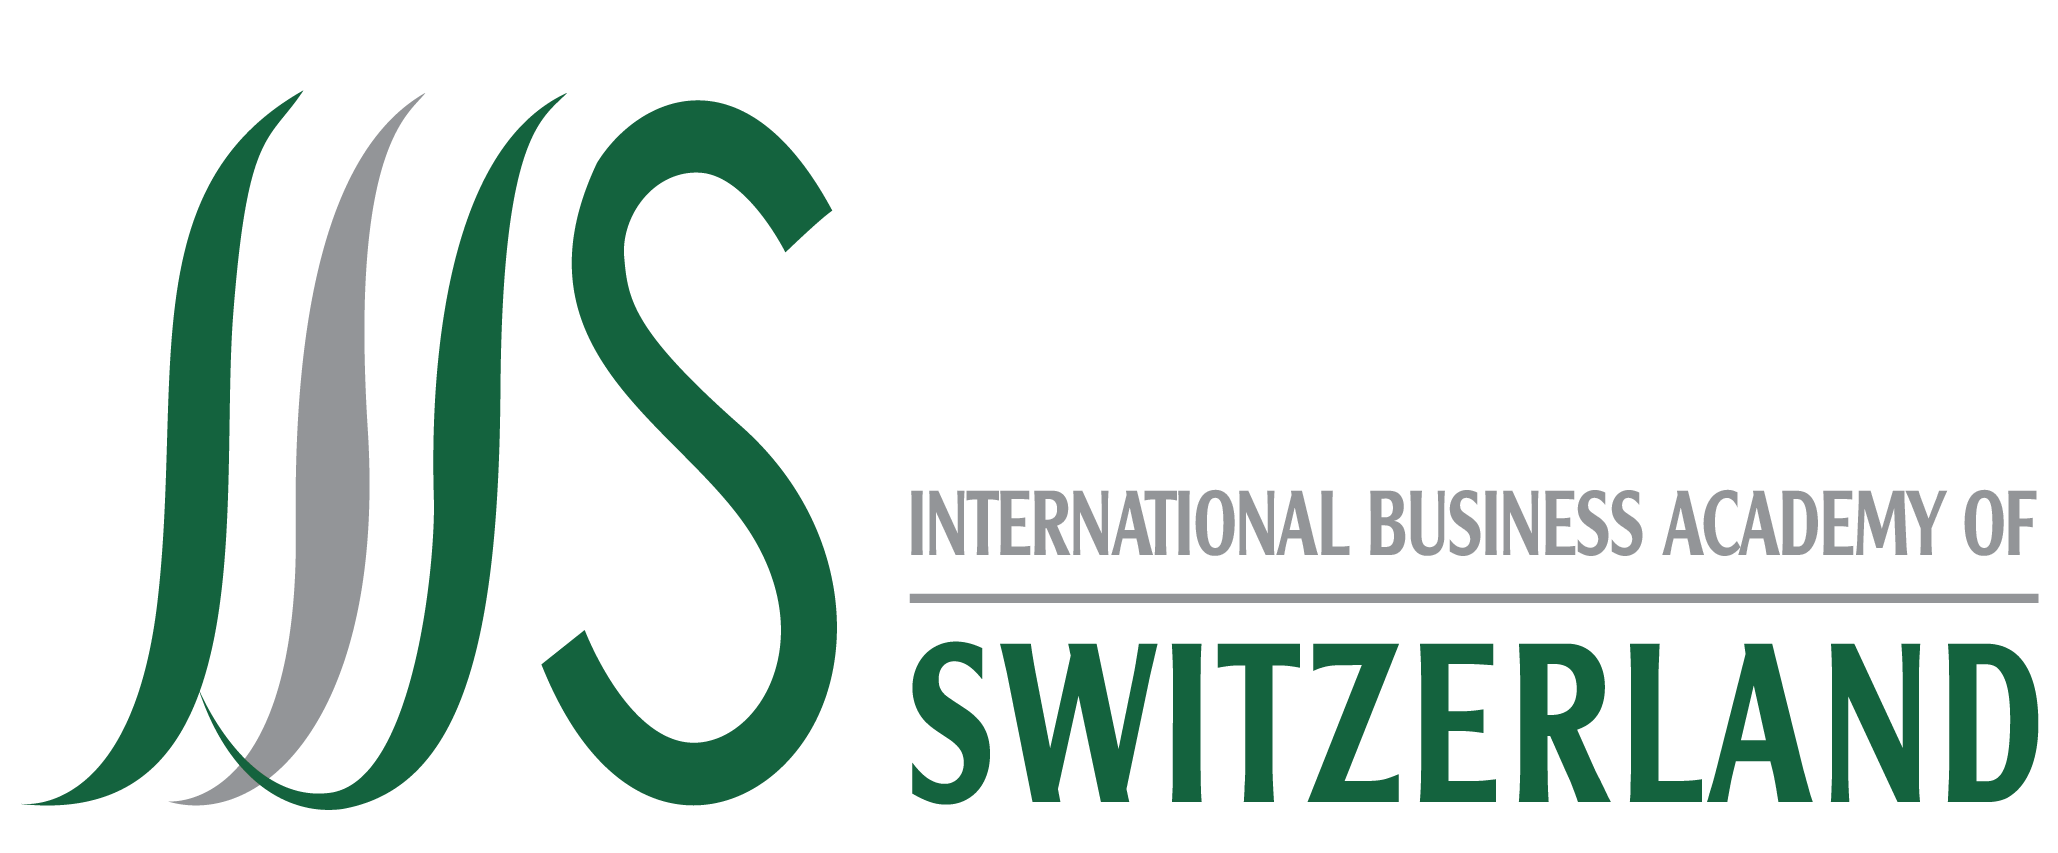 International Business Academy of Switzerland (IBAS)